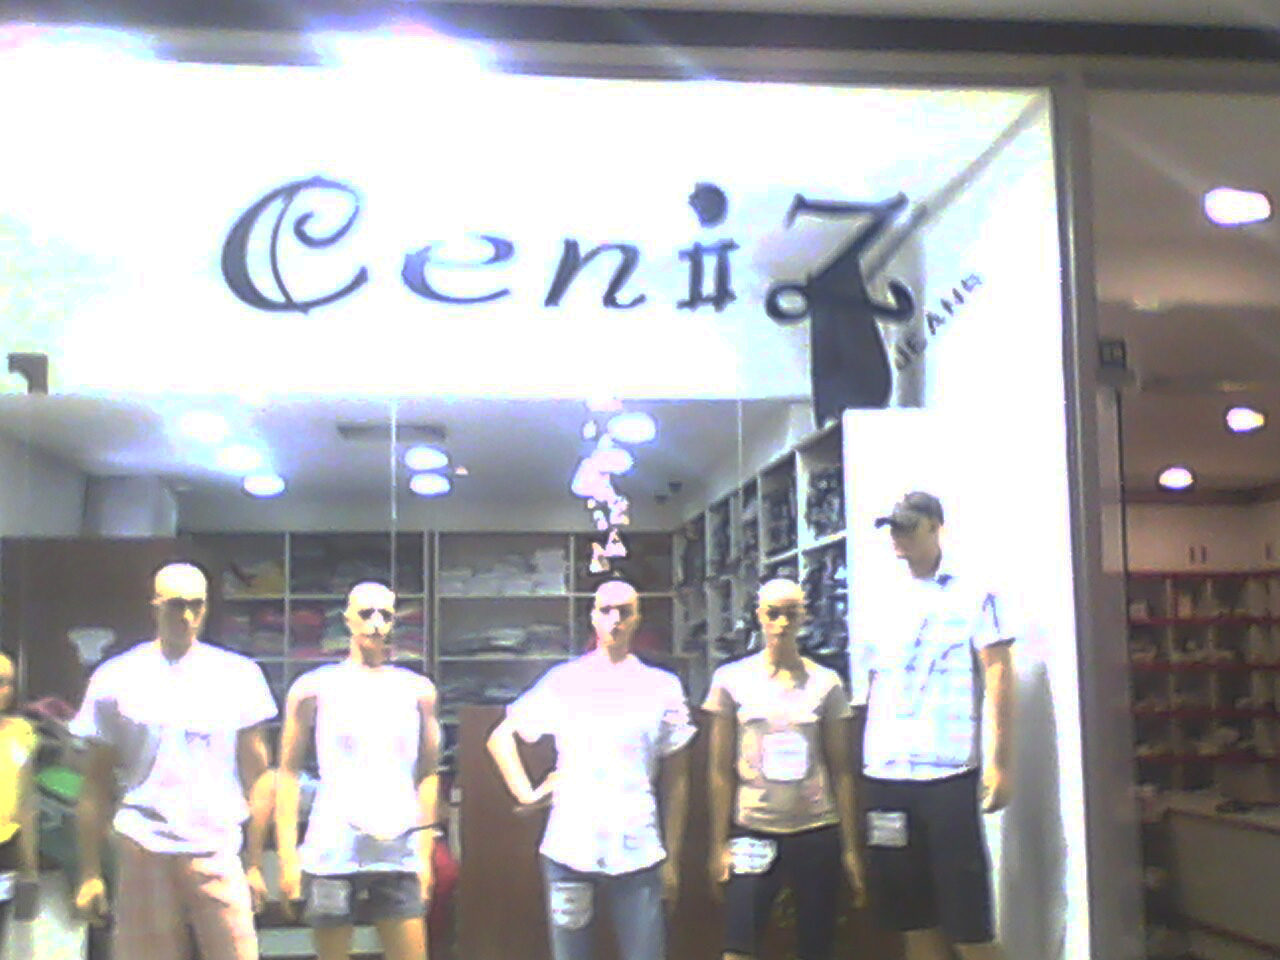 Clothing Store in Brazil